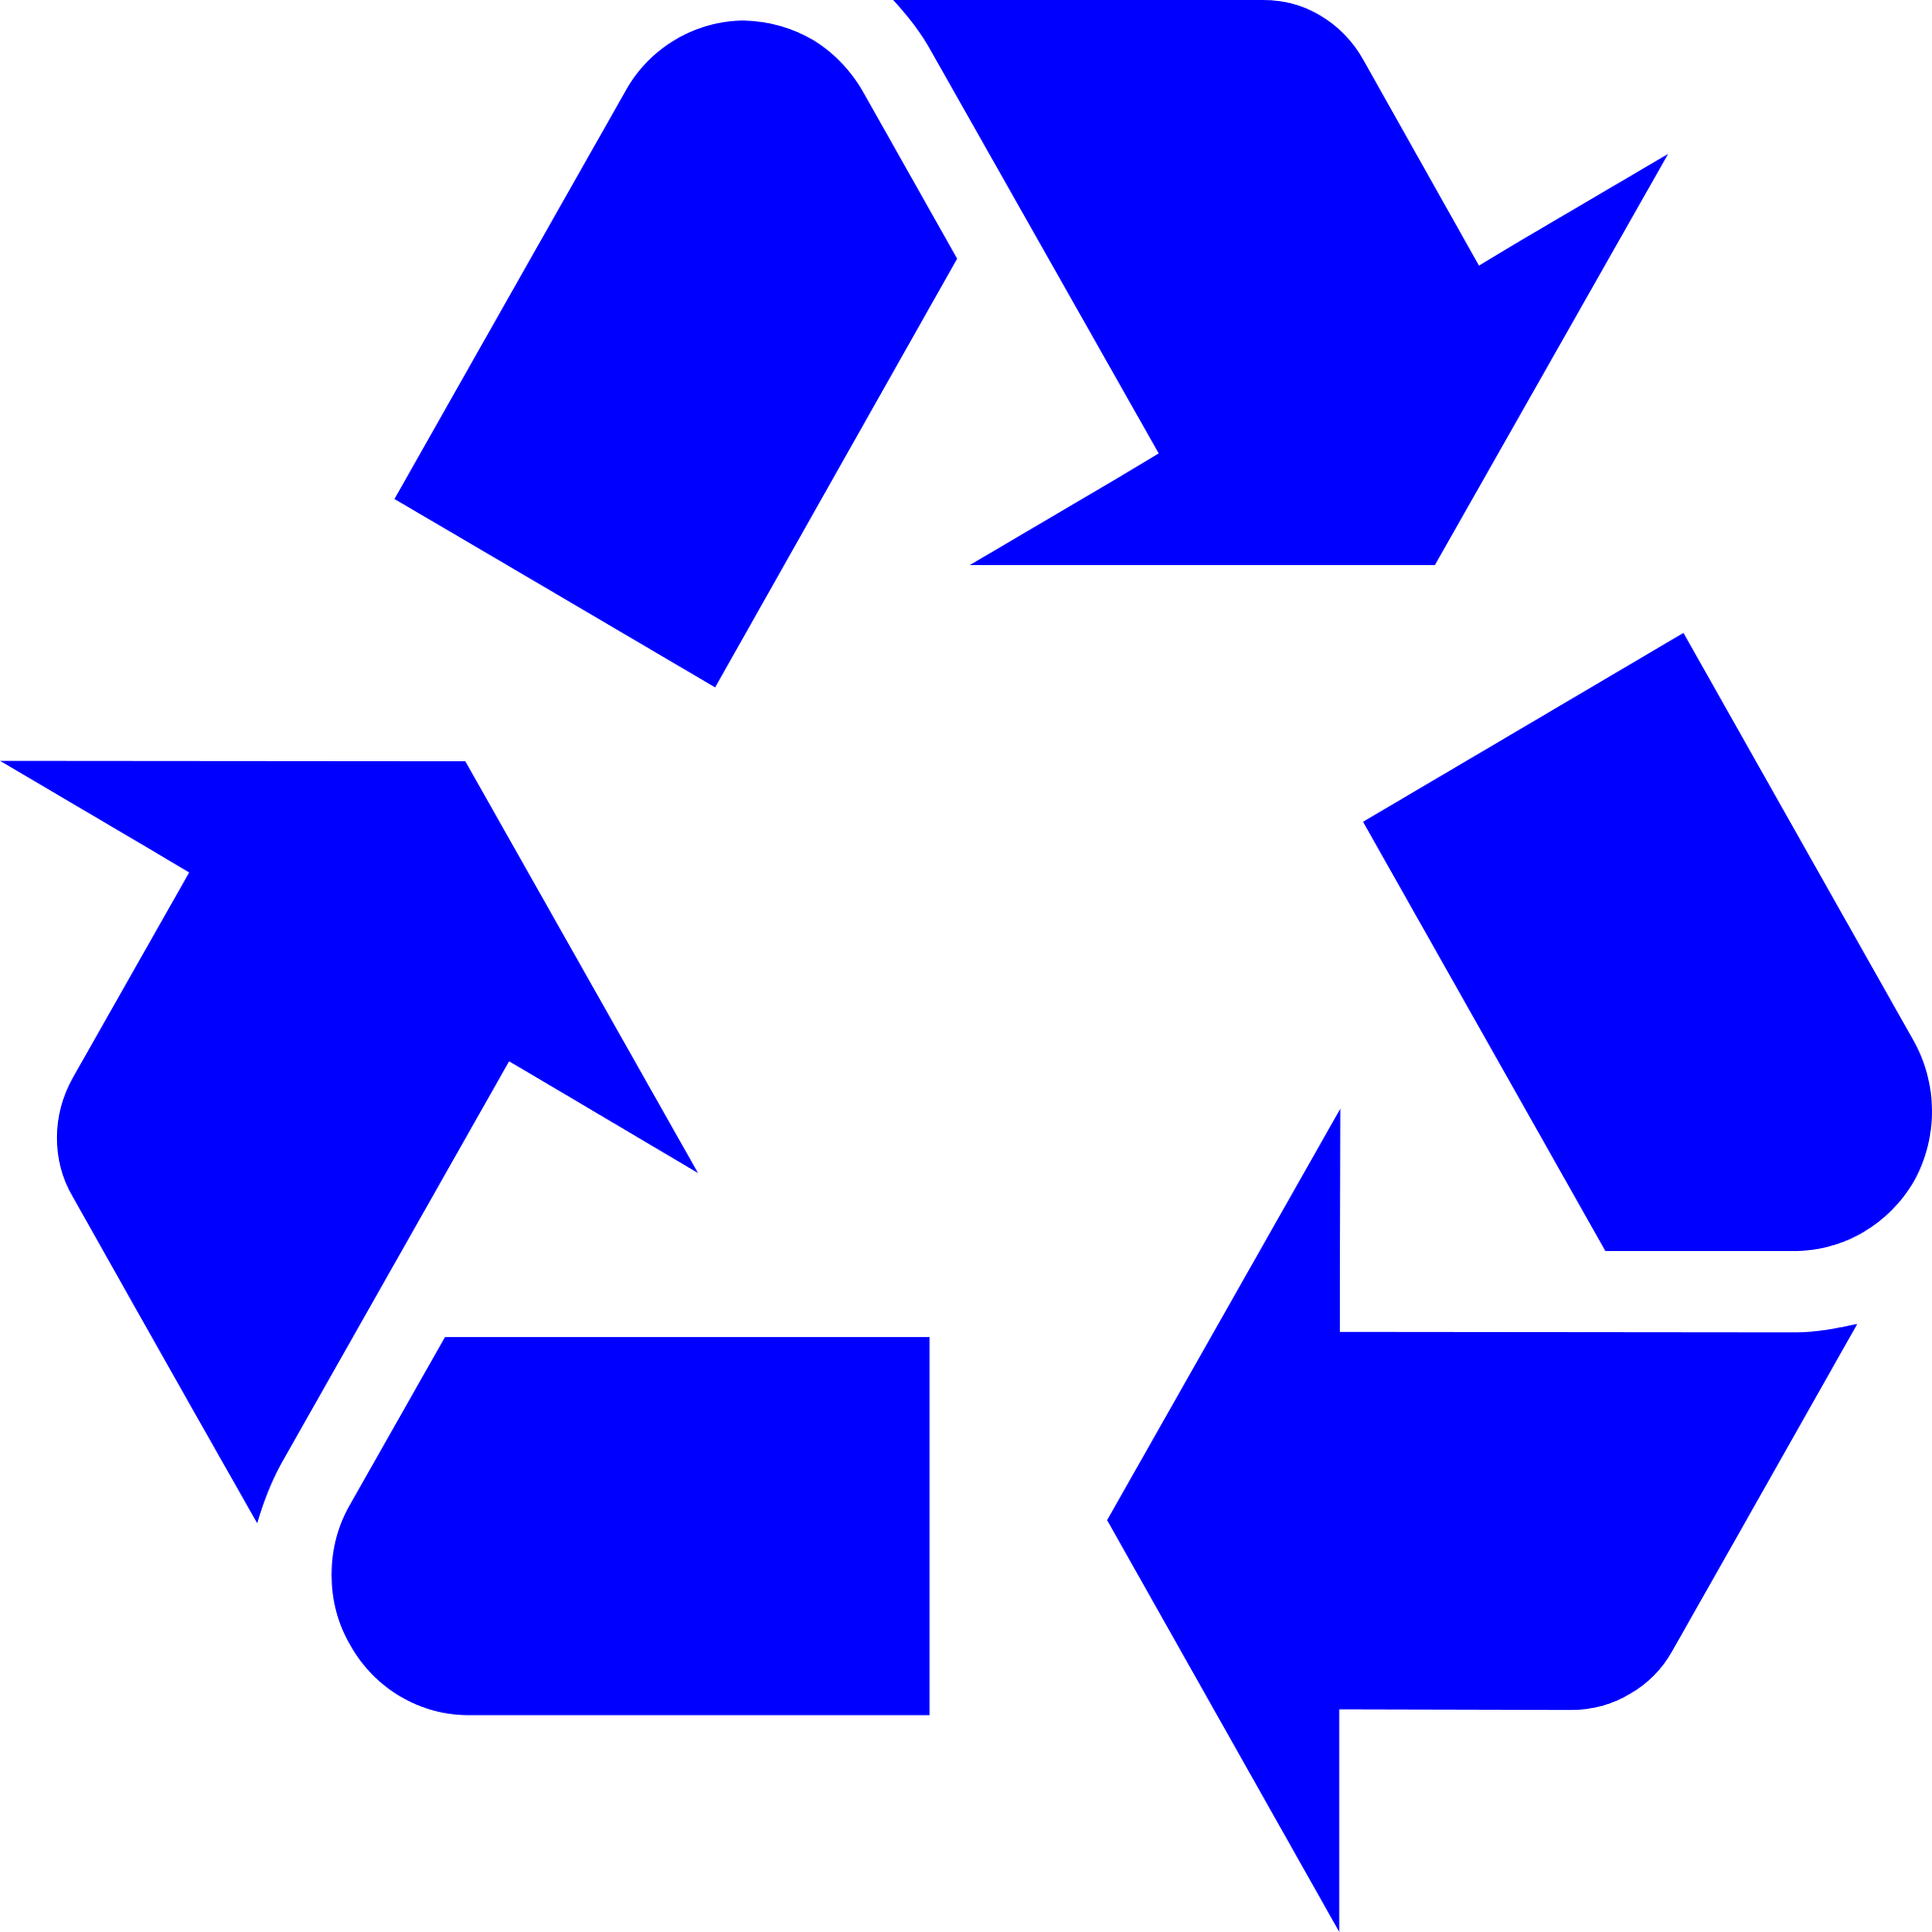 Symbol Recycling Baskets Paper Rubbish Recycle Waste PNG Image